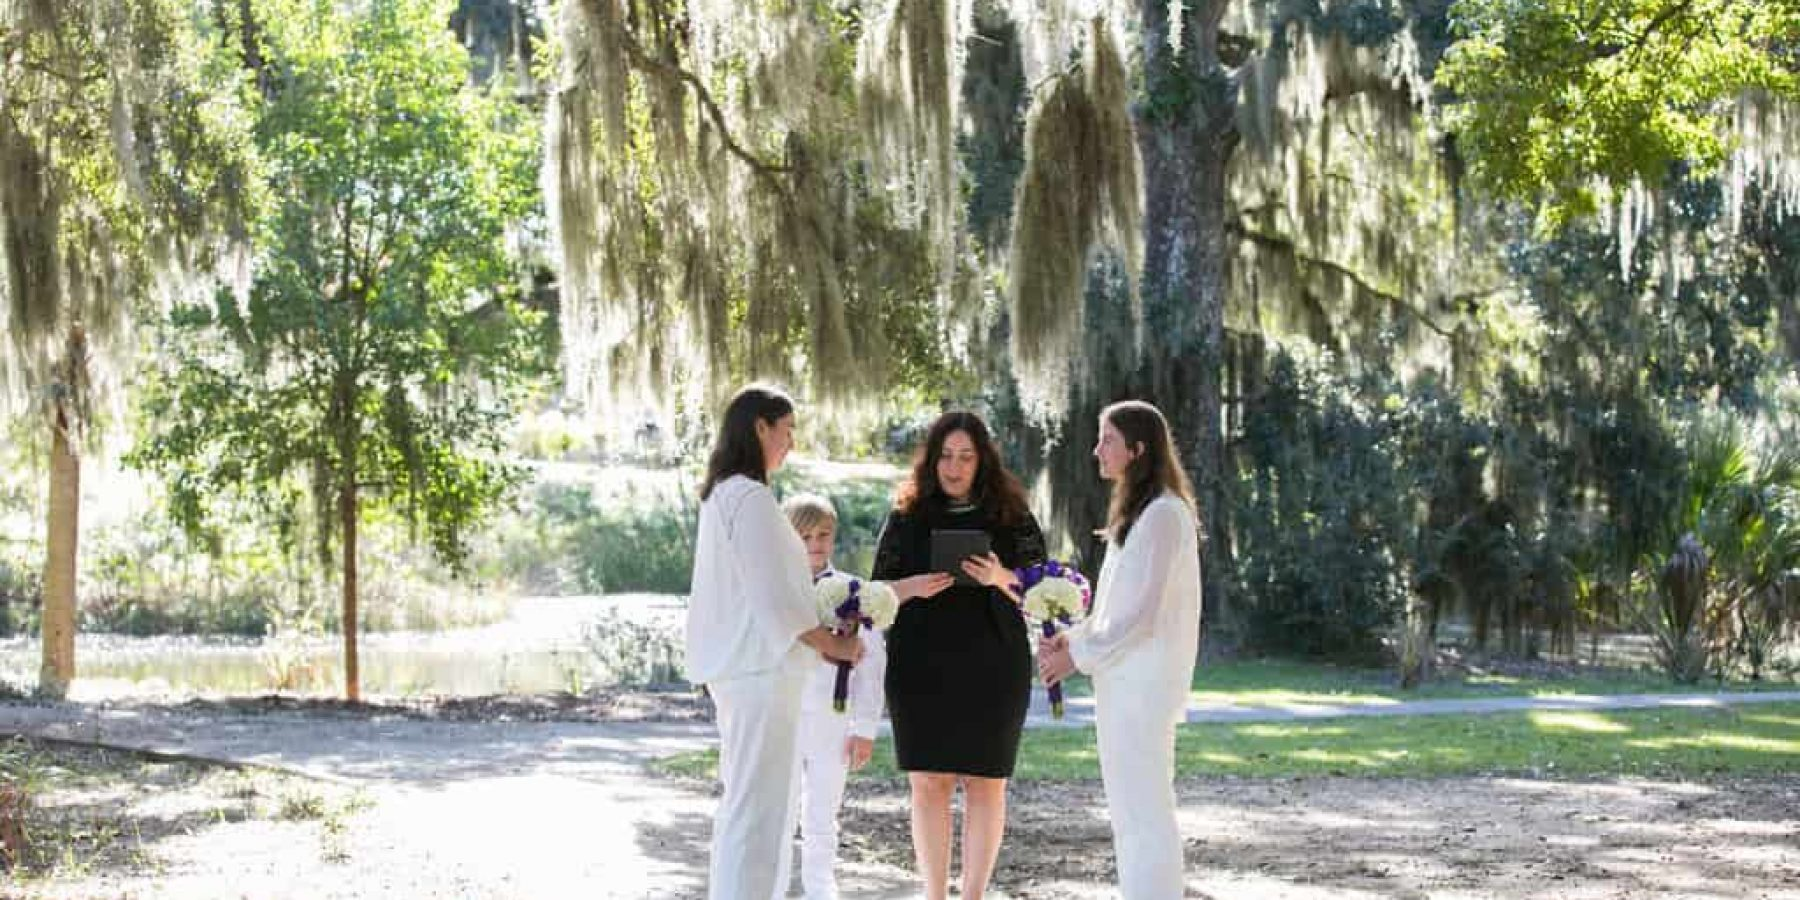 2015 Savannah Wedding Location Review, Part 4- Greenwich Park & Tybee Island